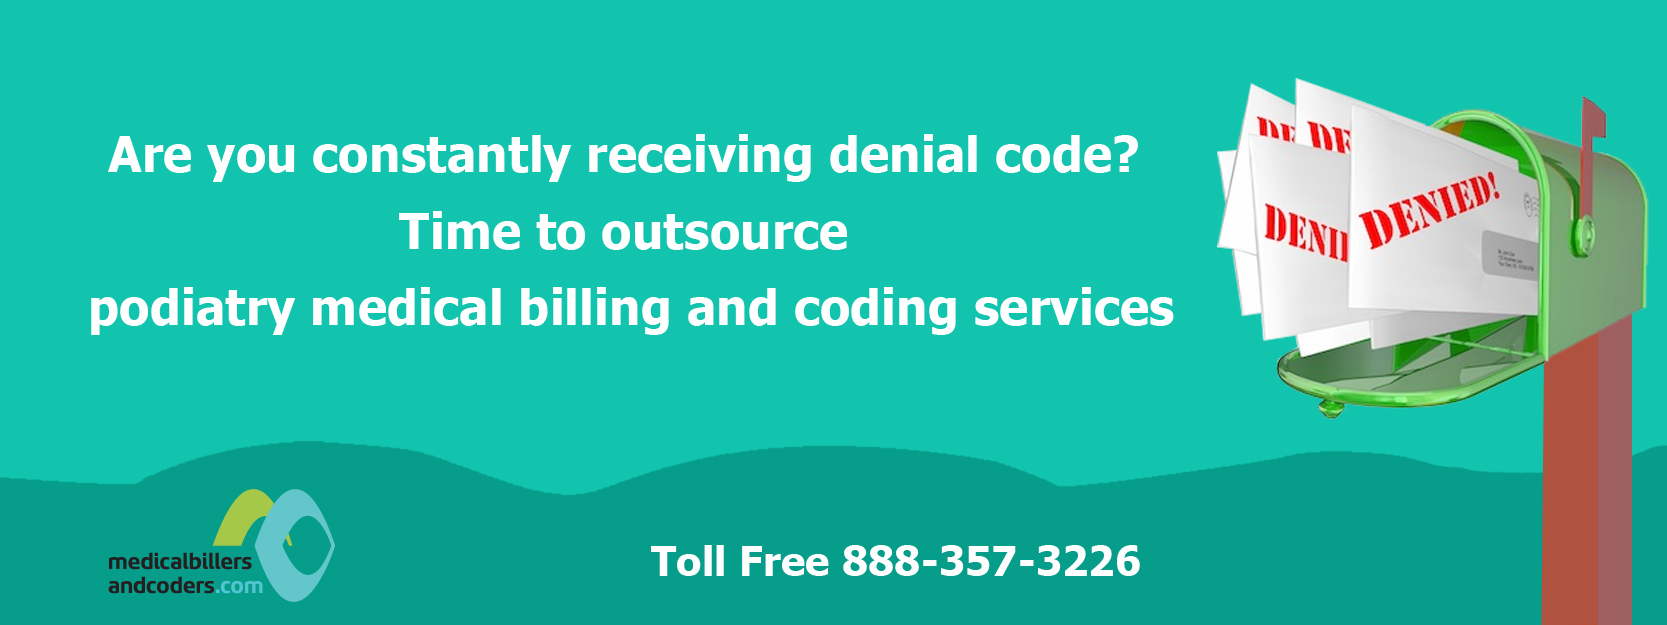 Are-you-constantly-receiving-denial-code?-Time-to-outsource-podiatry-medical-billing-and-coding-services